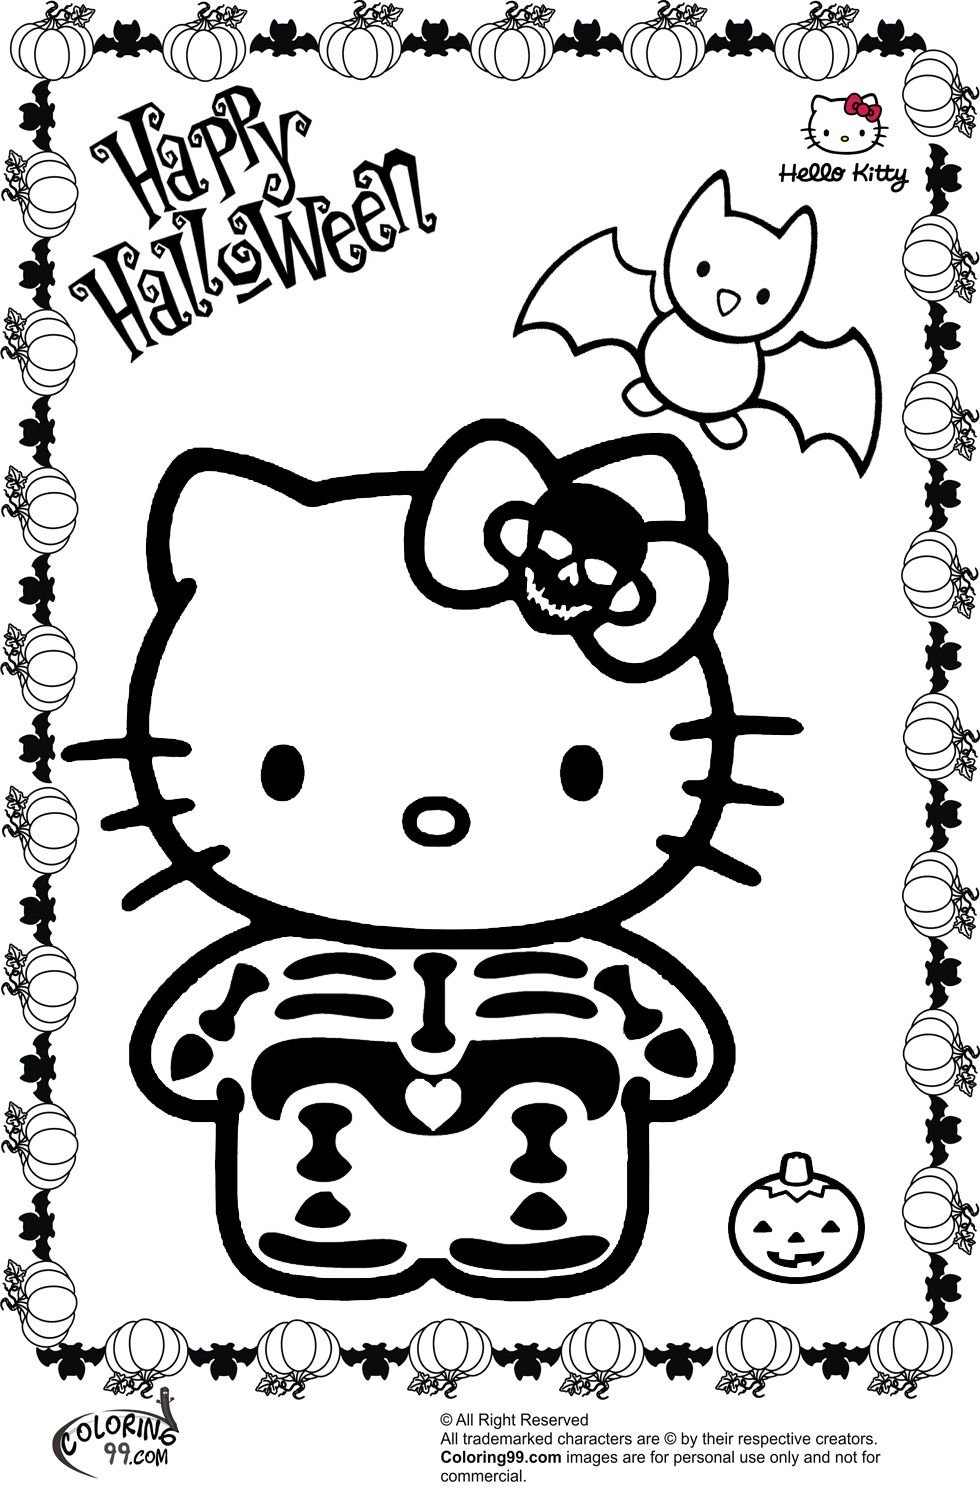 Hello Kitty Halloween Skeleton Coloring Pages Hello Kitty Coloring Hello Kitty Colouring Pages Kitty Coloring